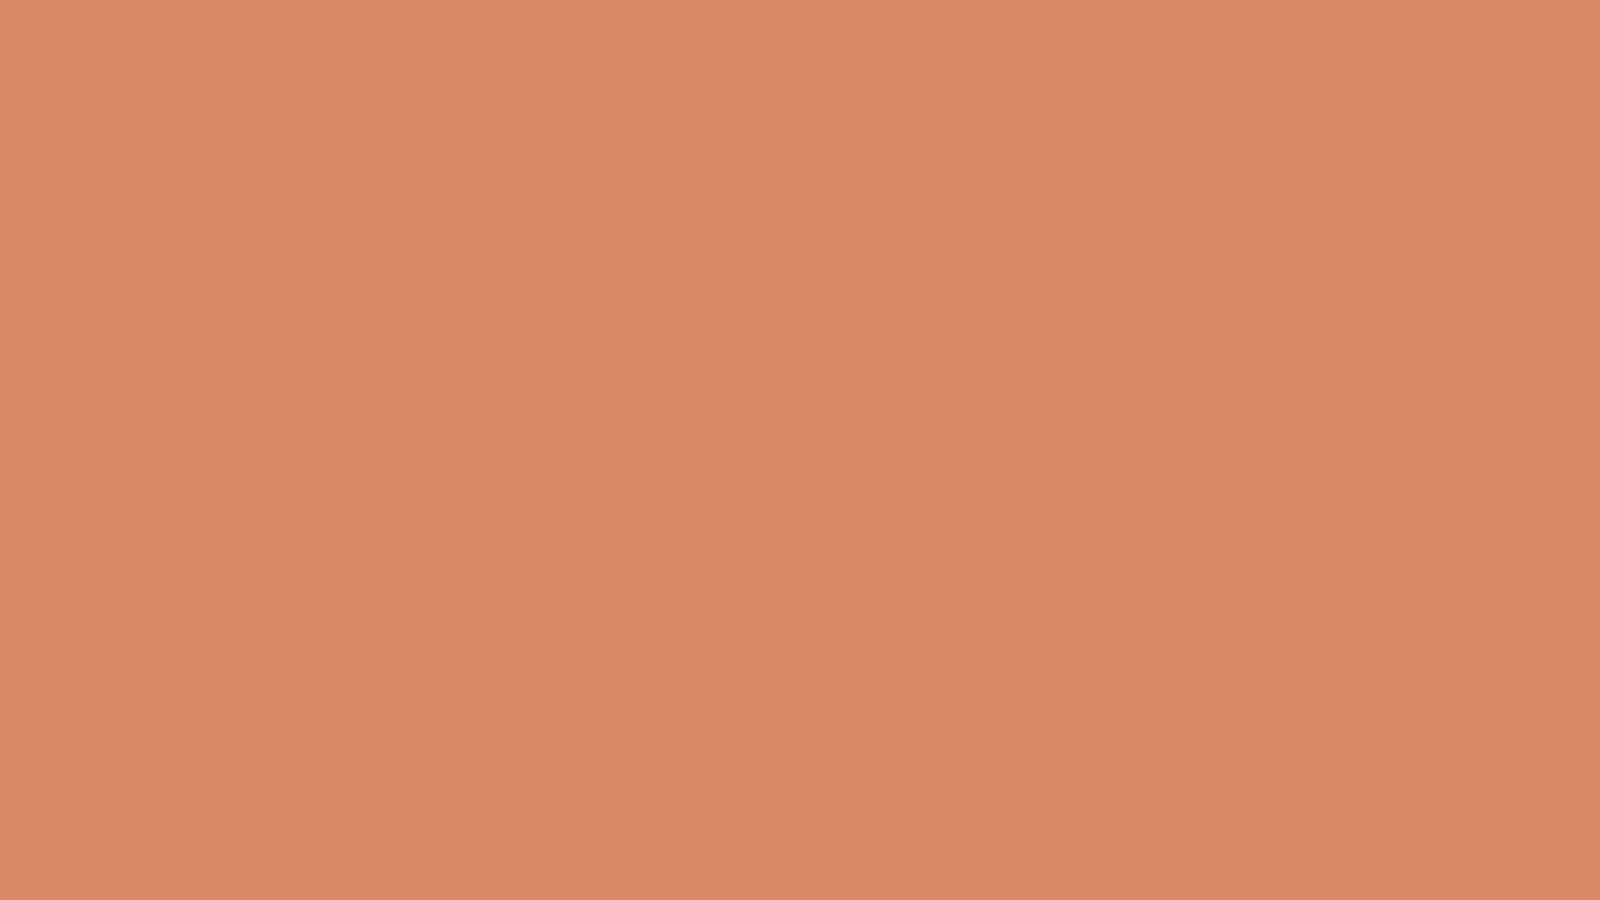 1600x900 Pale Copper Solid Color Background